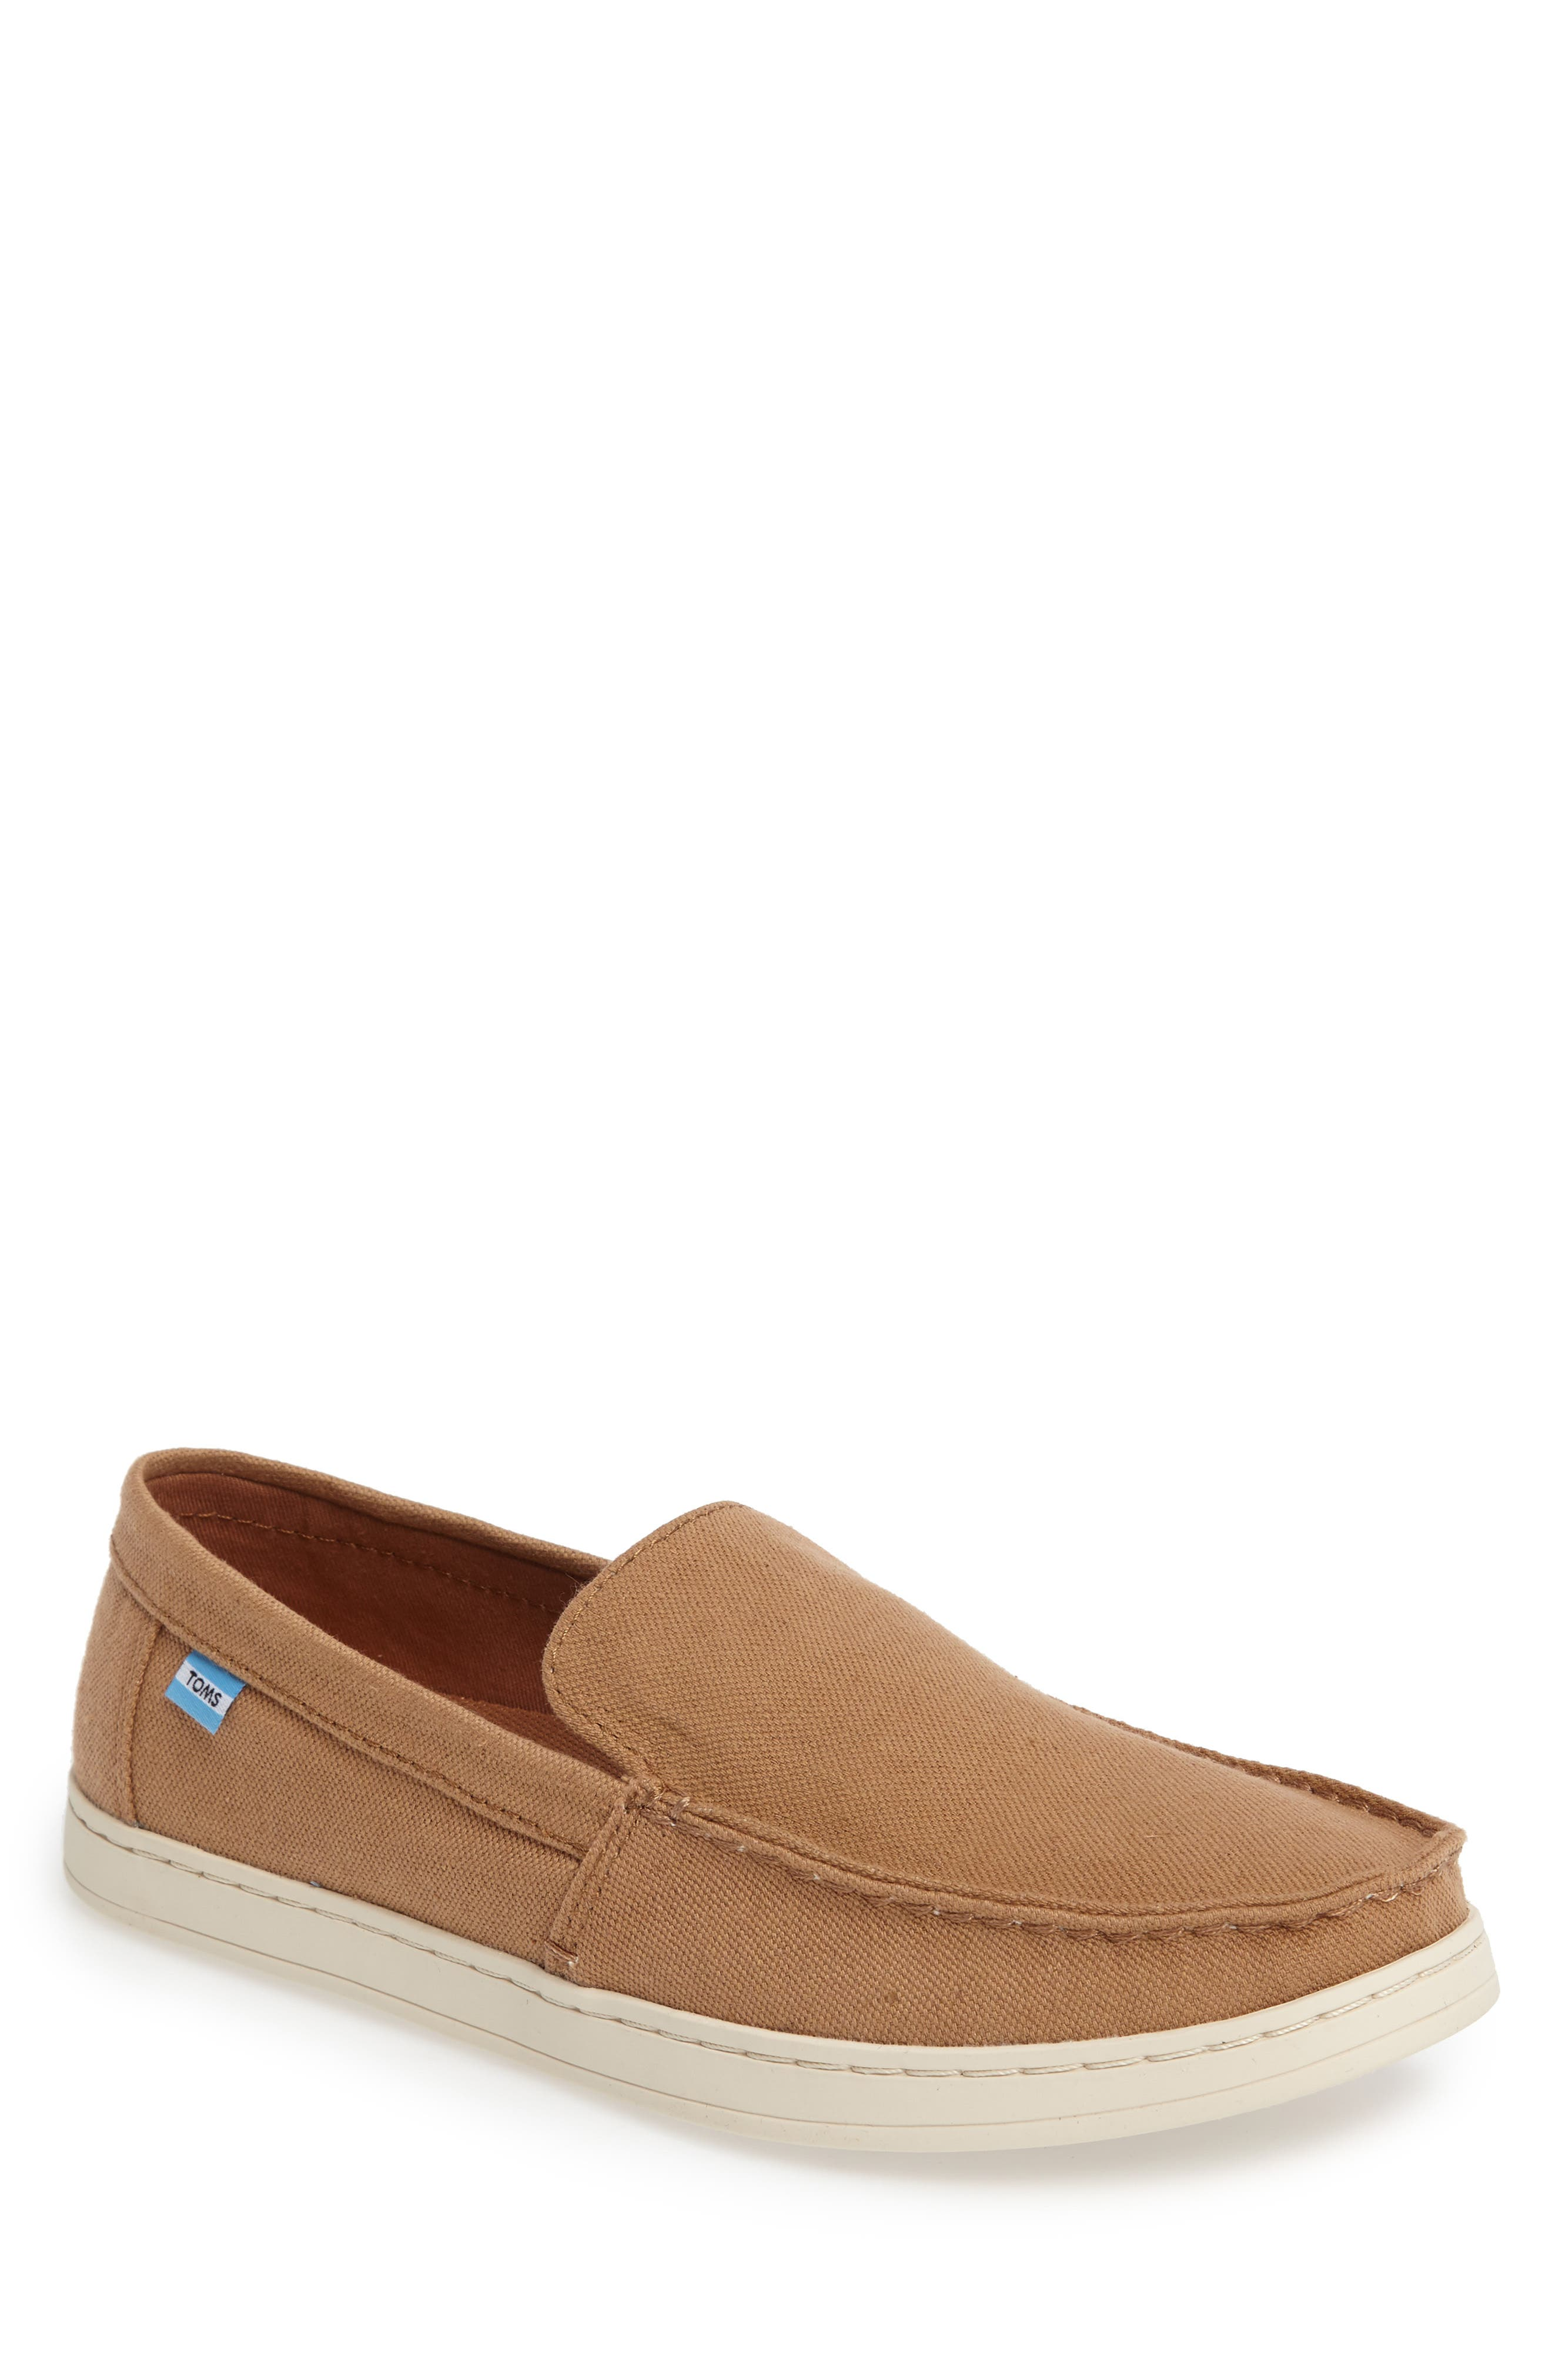 Aiden Slip-On Loafer,                             Main thumbnail 1, color,                             210